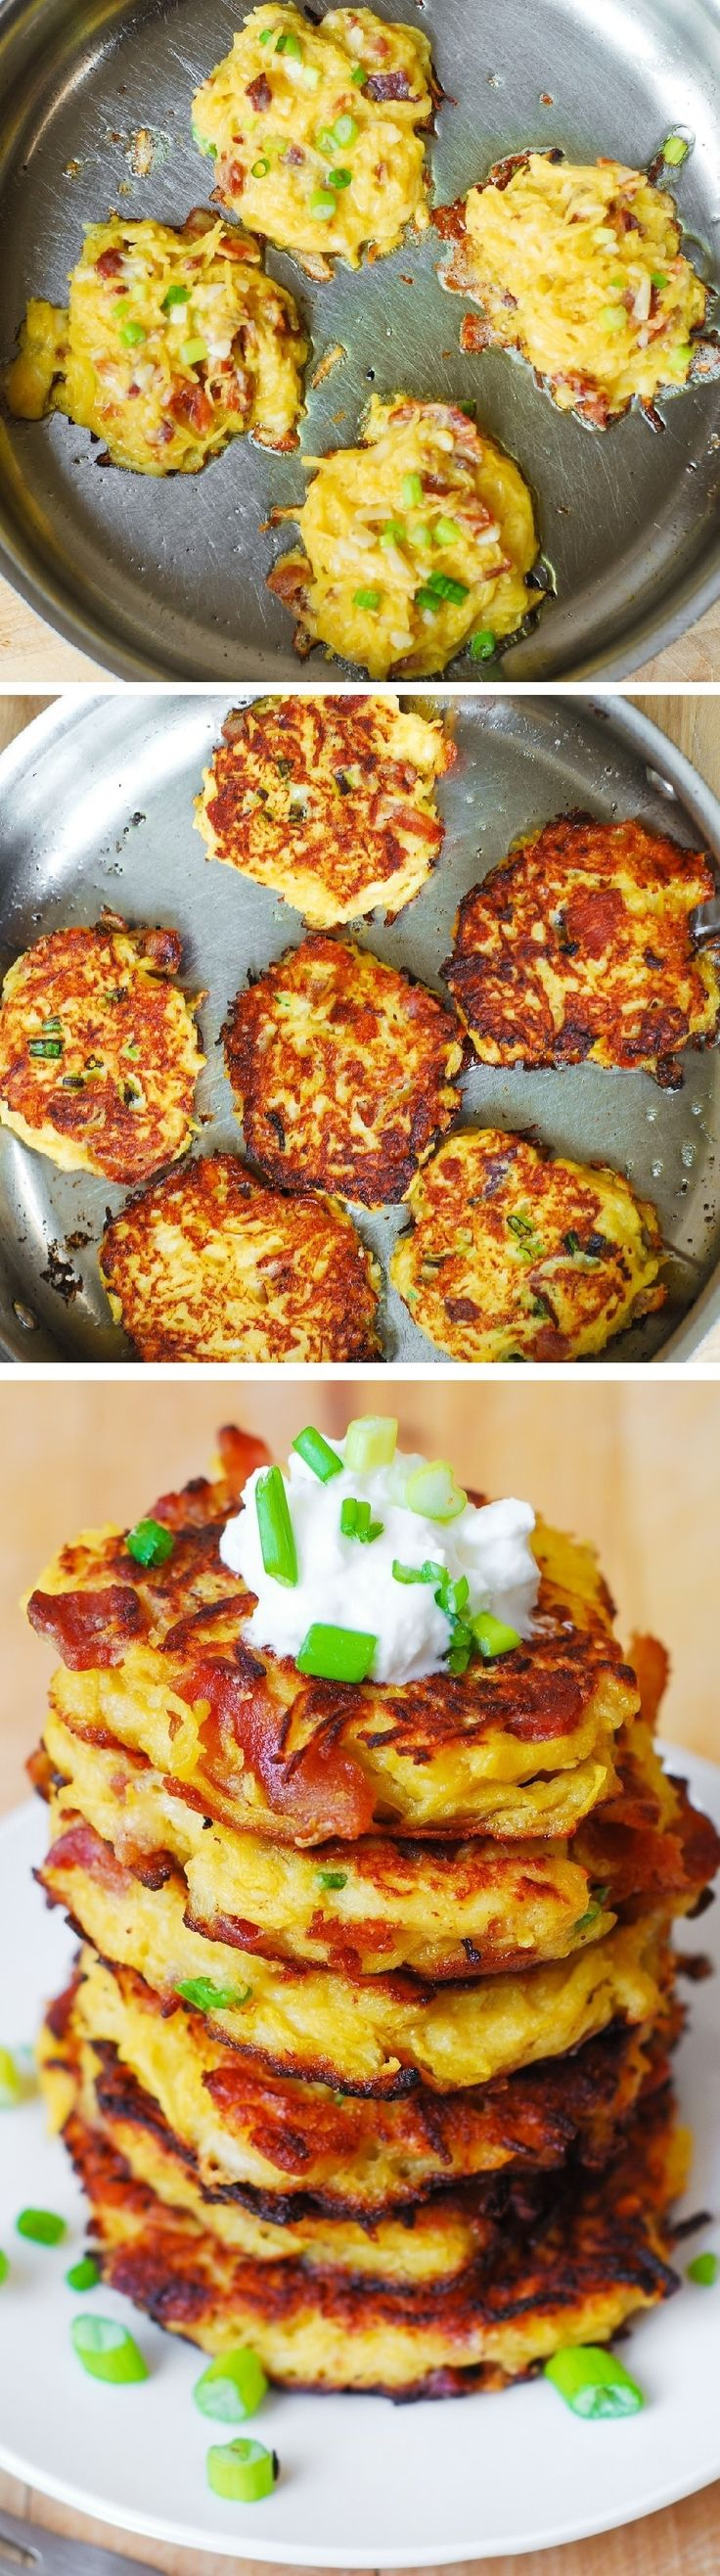 "Kids breakfast ideas: healthy foods for breakfast  Bacon, Spaghetti Squash, and Parmesan Fritters  "" So unbelievably good! Kids love these - what a great way to incorporate veggies! Serve with a dollop of Greek yogurt. #snacks #appetizers #breakfast""  ""2 eggs 1/3 cup flour (for gluten free version, use multi-purpose gluten-free King Arthur flour) 3 cups spaghetti squash, cooked and wringed out (see instructions below) 1/2 cup Parmesan cheese, freshly grated 1/4 + 1/8 teaspoons salt 3 green onions, chopped 5 bacon strips, cooked, drained of fat, and chopped 2 tablespoons olive oil For garnish: 2 green onions, chopped dollop of Greek Yogurt"""